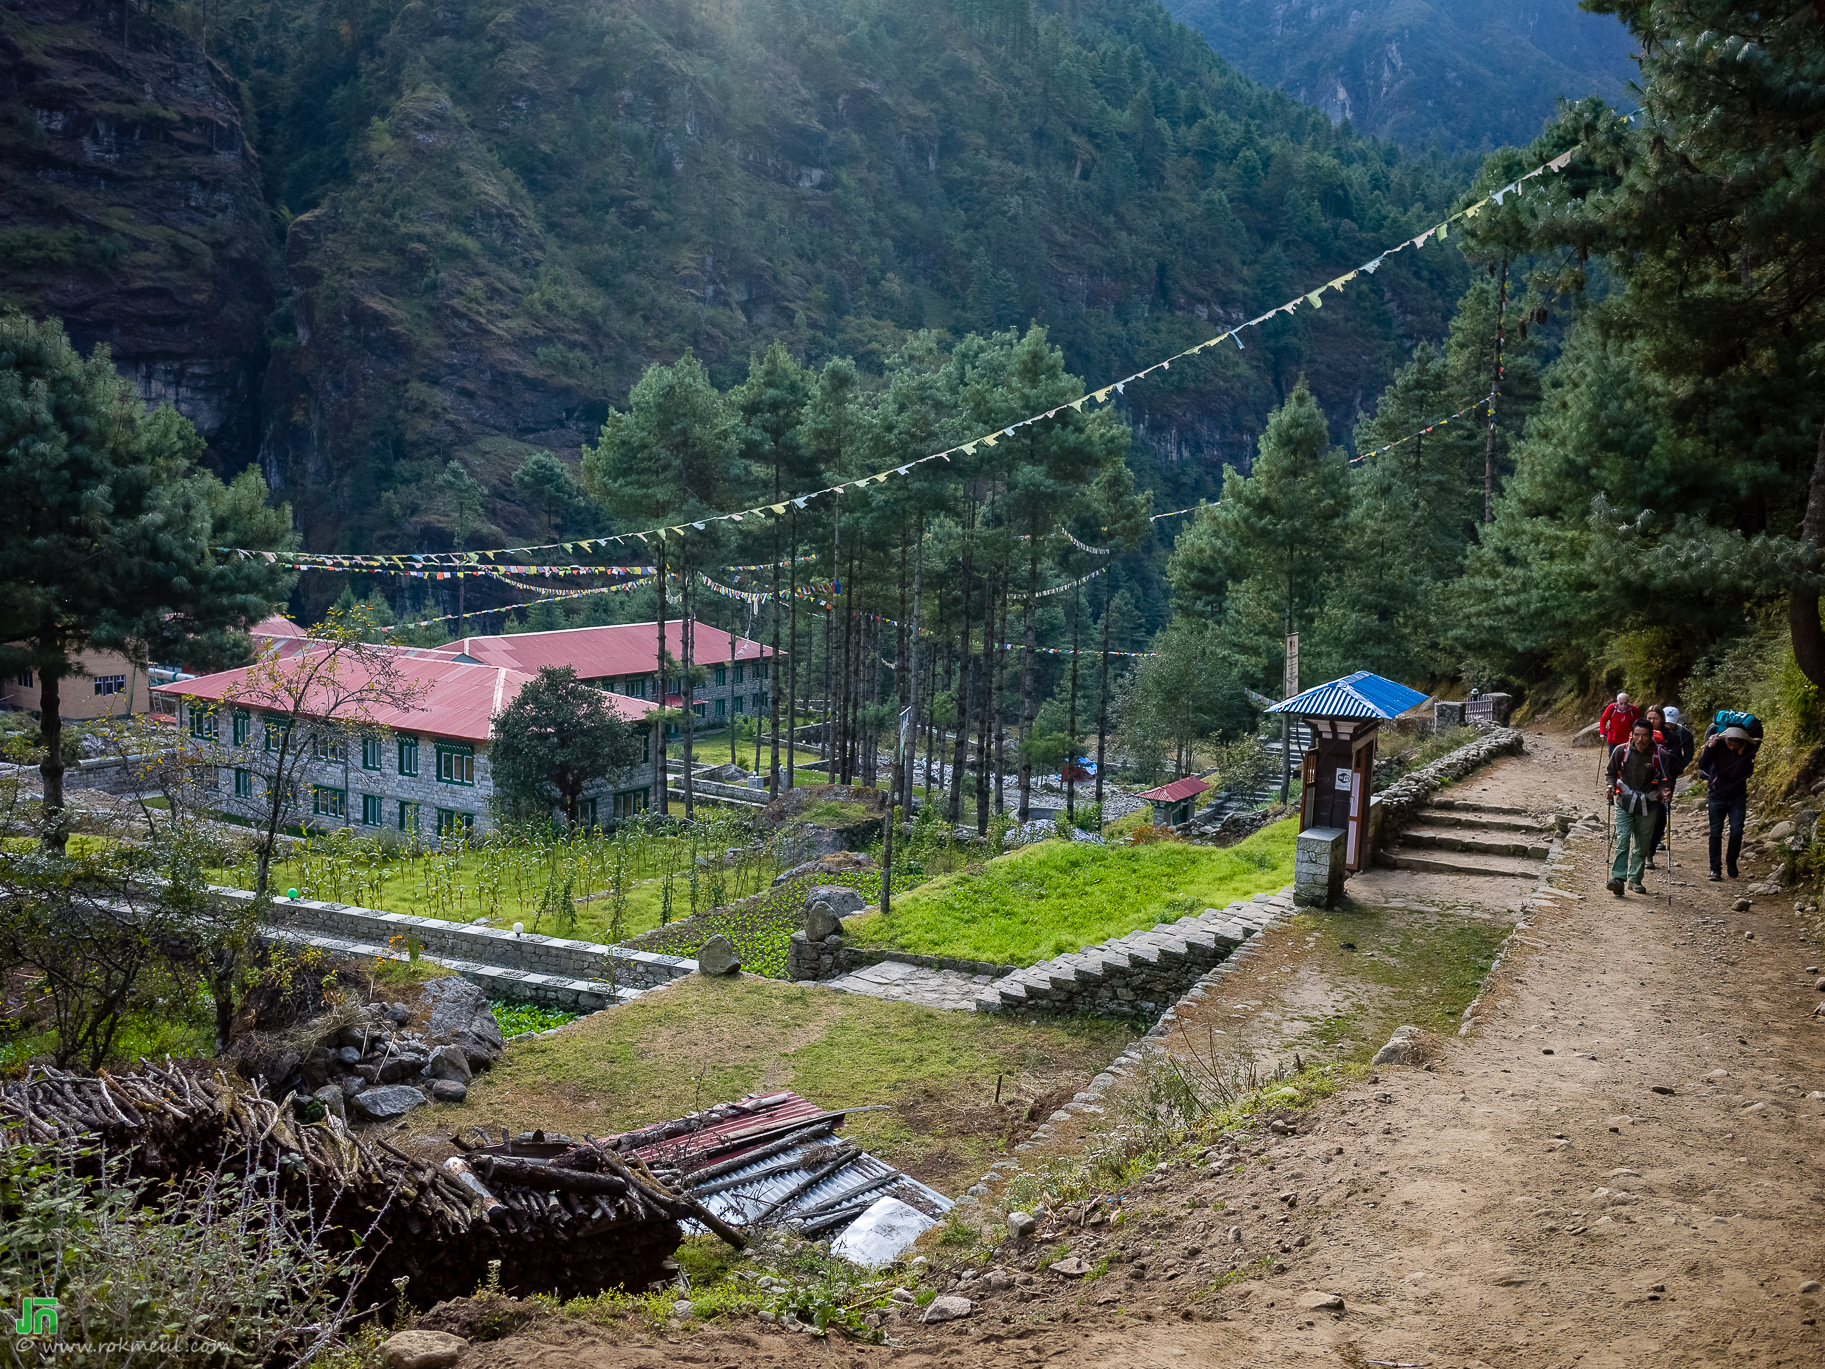 On the way from Phakding to Namche-Bazar